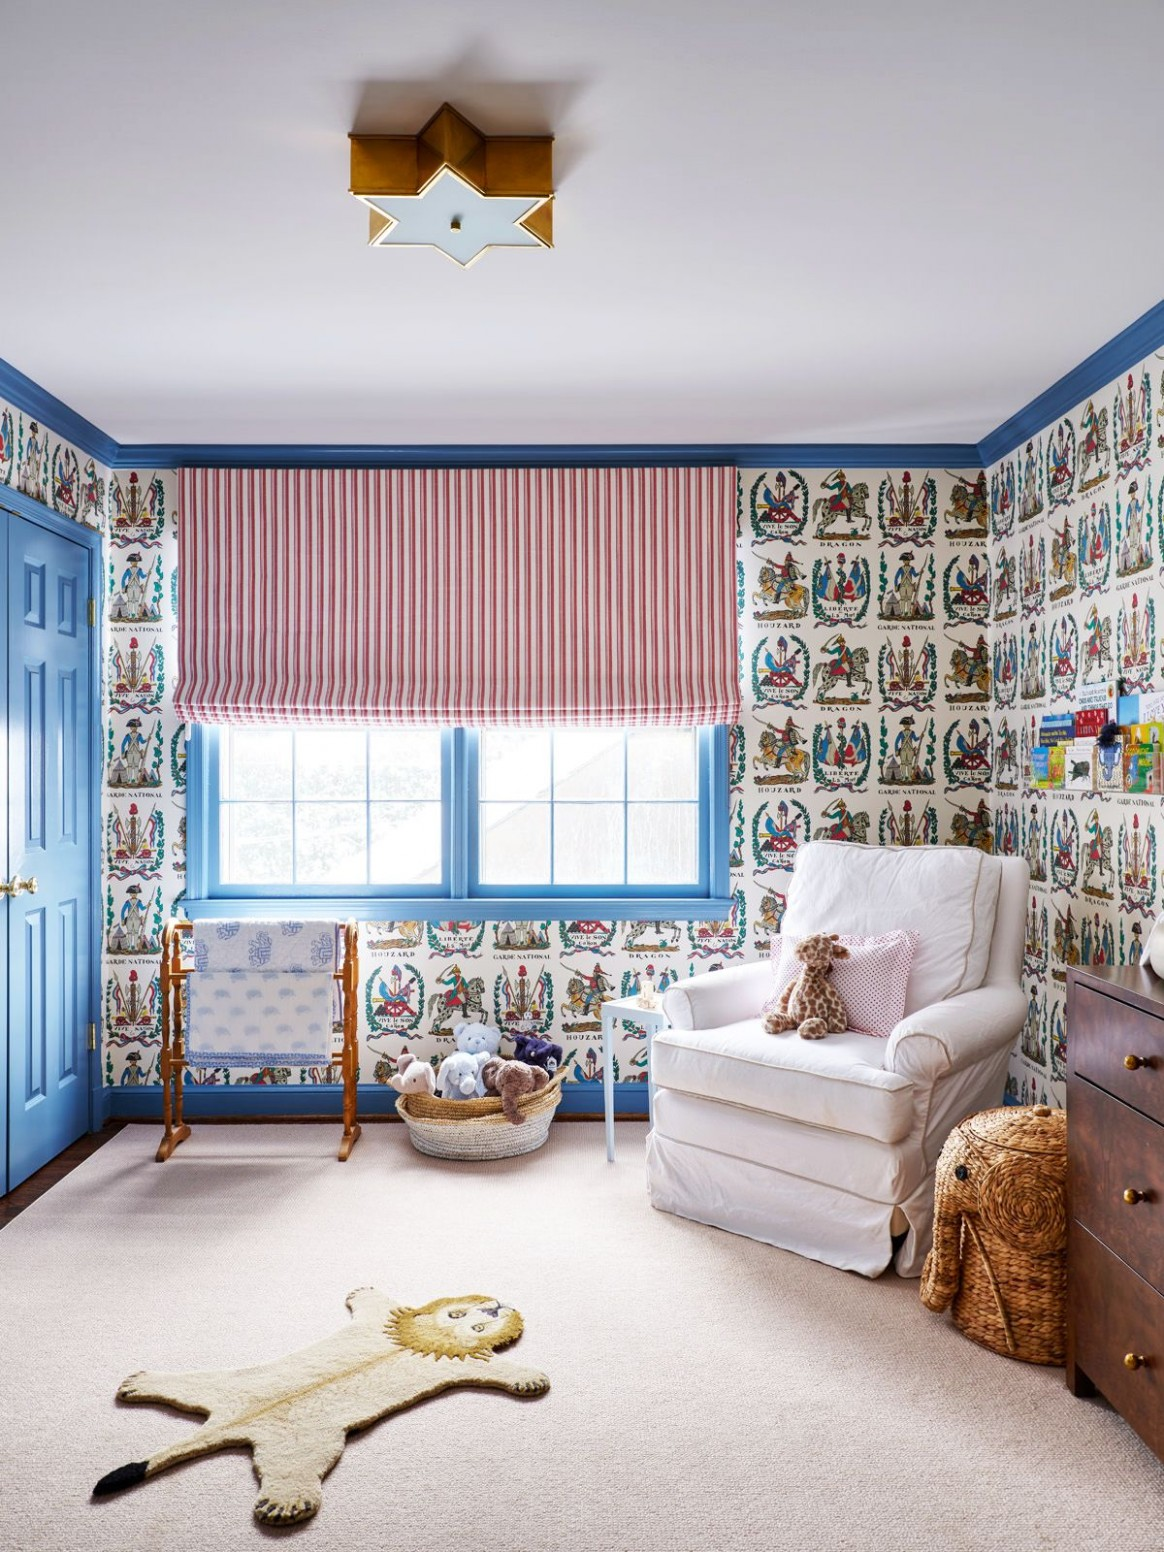 10 Cute Nursery Decorating Ideas - Baby Room Designs for Chic Parents - Baby Room Furniture Ideas